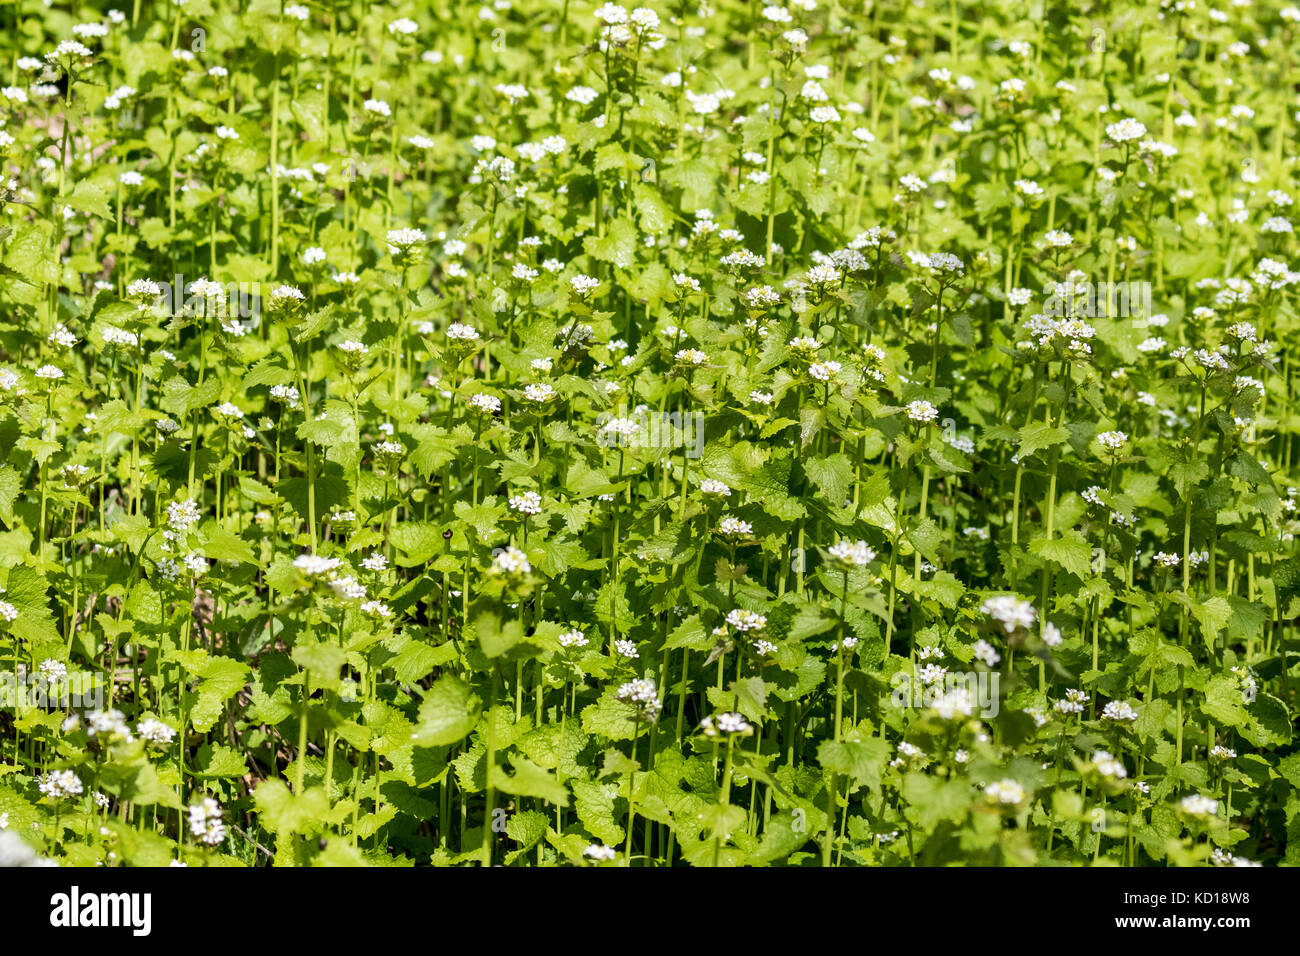 Garlic Mustard (Alliaria petiolata) an invasive weed brought to North Amercan from Europe - this patch was found in Cudia Park in the Scarborough Bluffs of eastern Toronto, Ontario, Canada Stock Photo